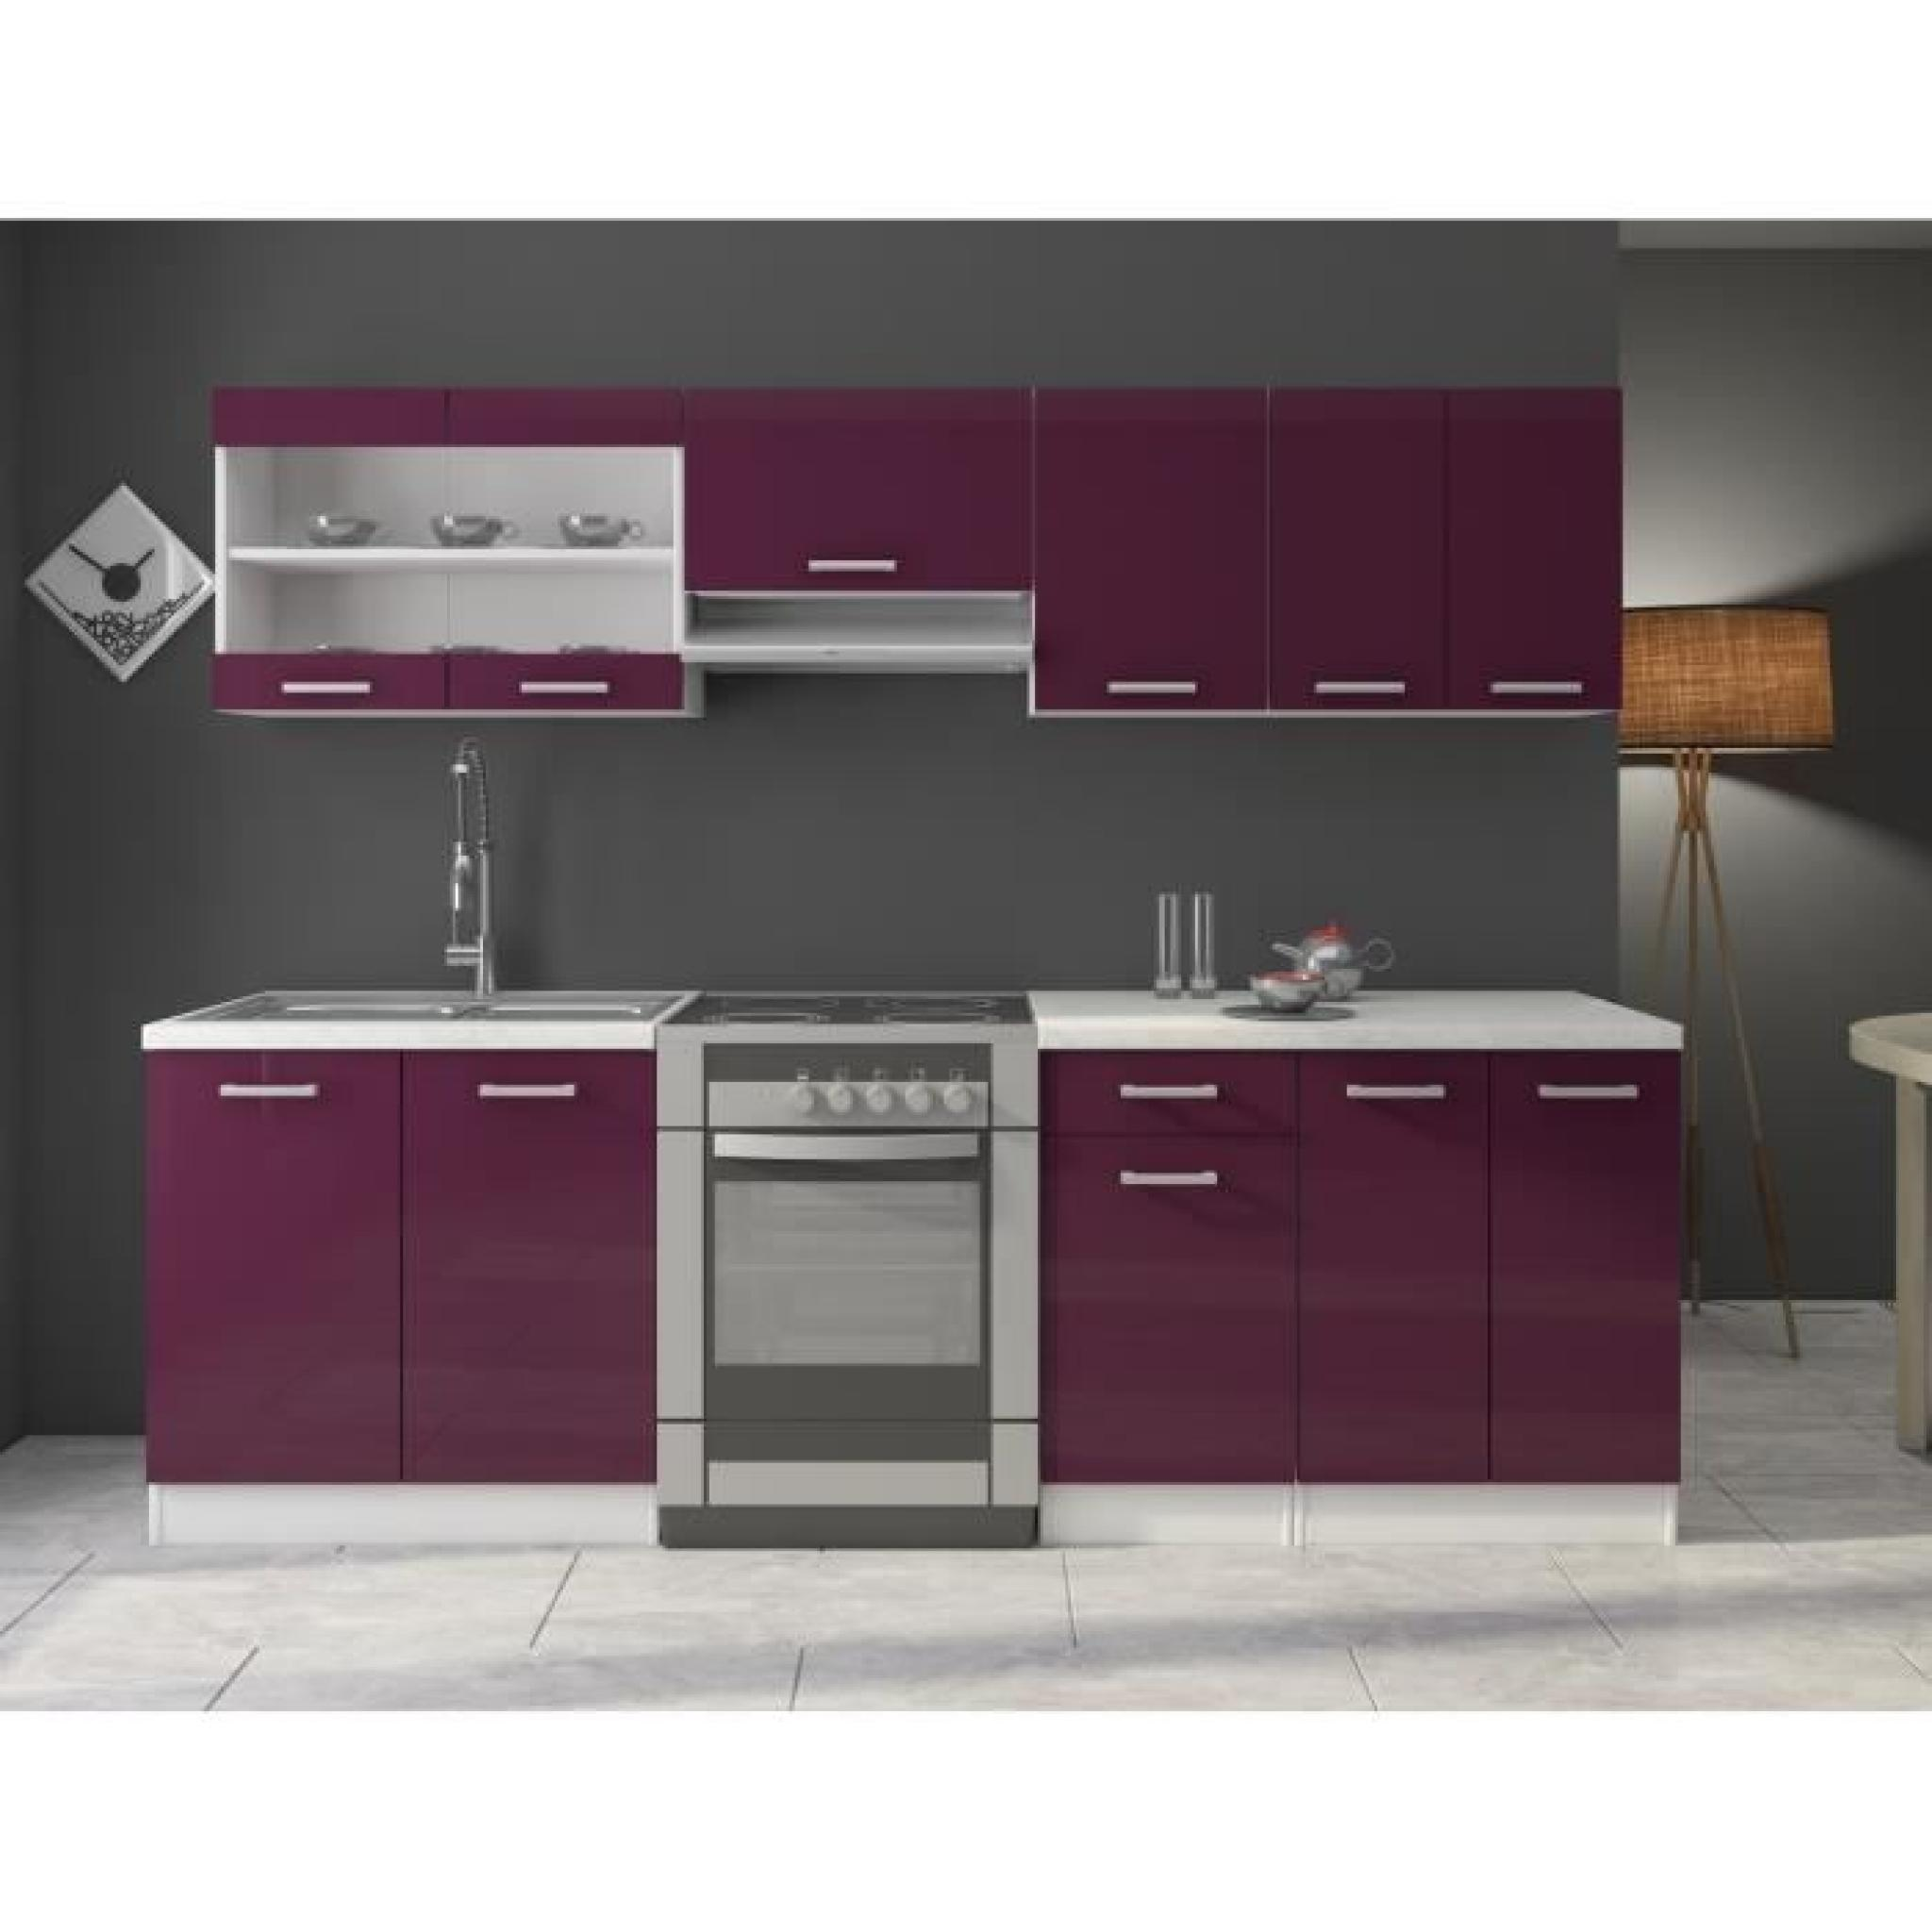 cuisine quipe aubergine interesting sabih roasted aubergine and spicy chickpeas with israeli. Black Bedroom Furniture Sets. Home Design Ideas